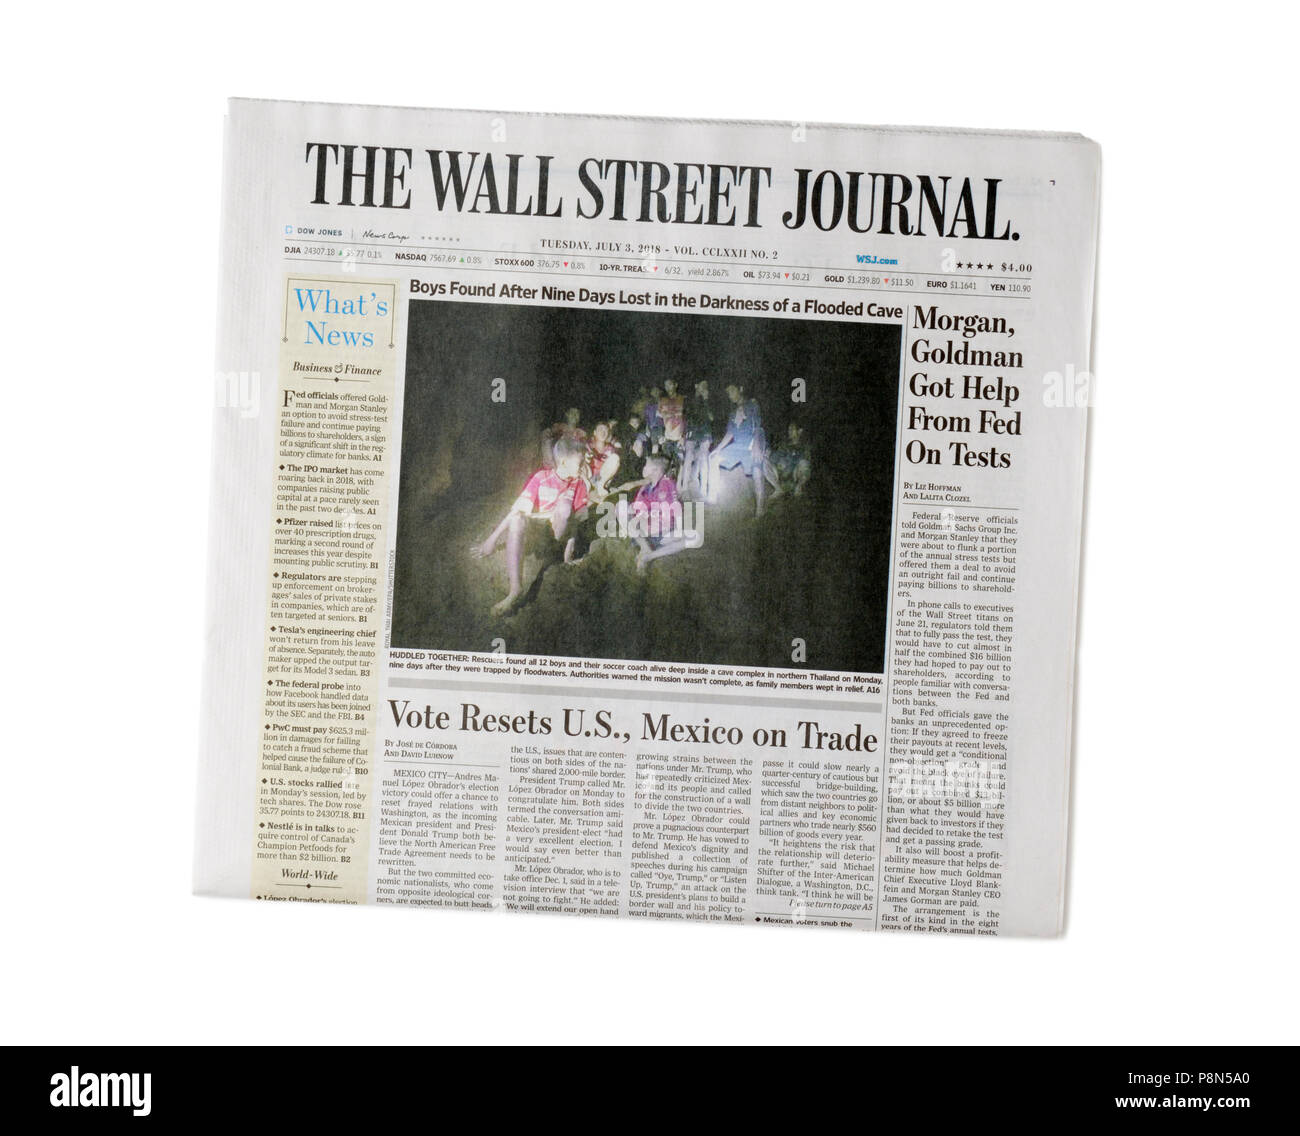 Newspaper, Wall Street Journal, front page, print edition - Stock Image